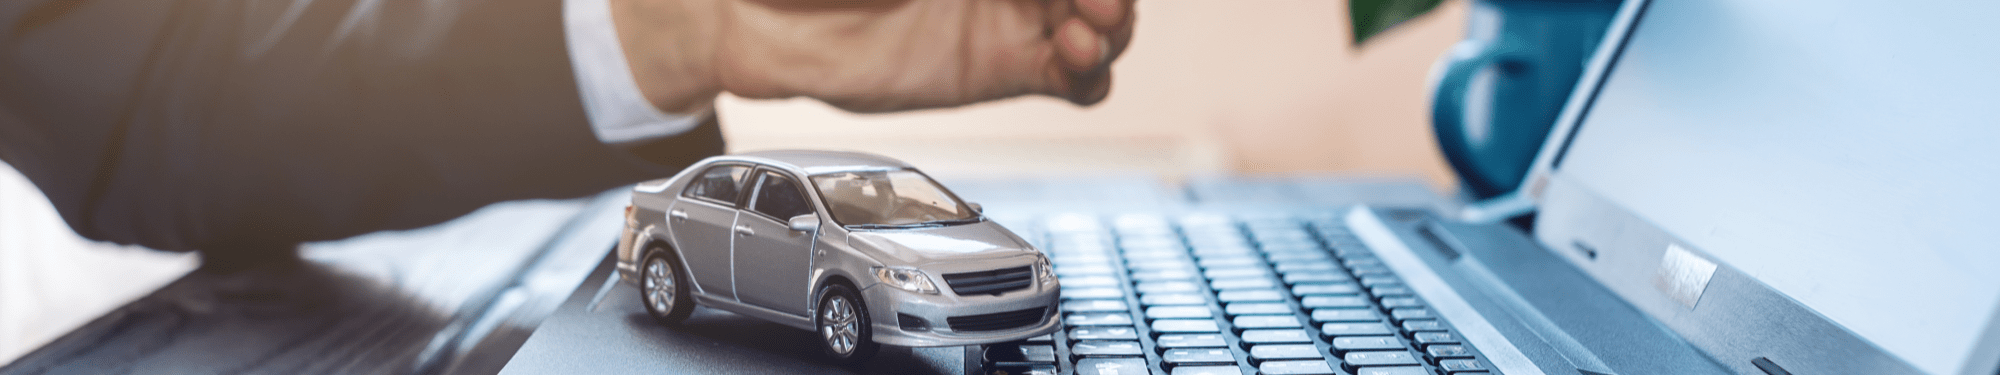 Affordable Used Cars Anchorage >> Affordable Used Cars Inc Anchorage Used Cars Anchorage